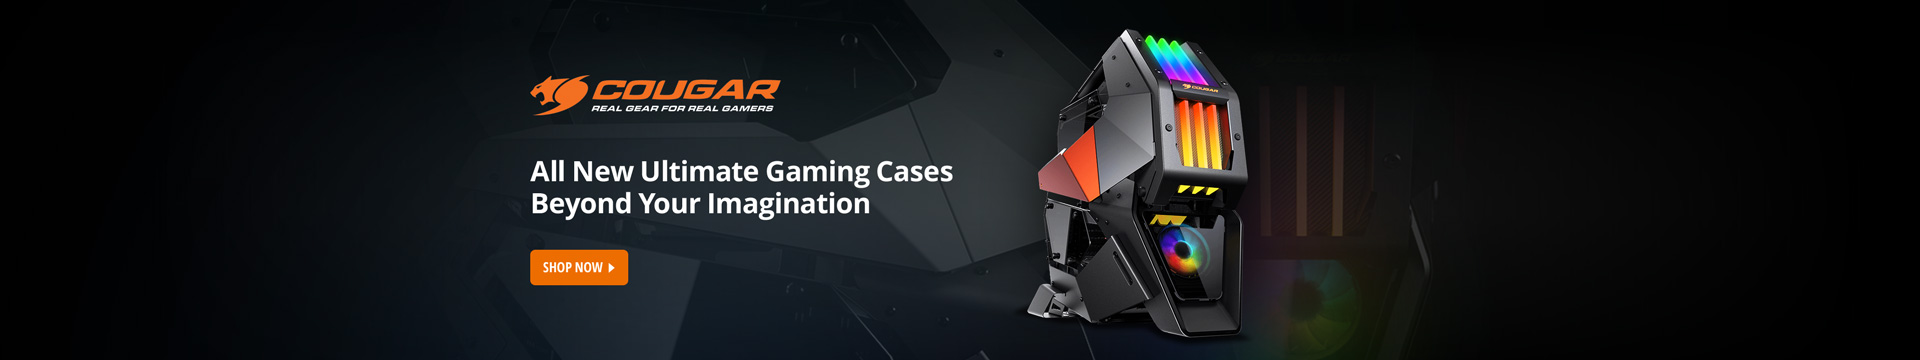 All New Ultimate gaming cases beyond your imagination